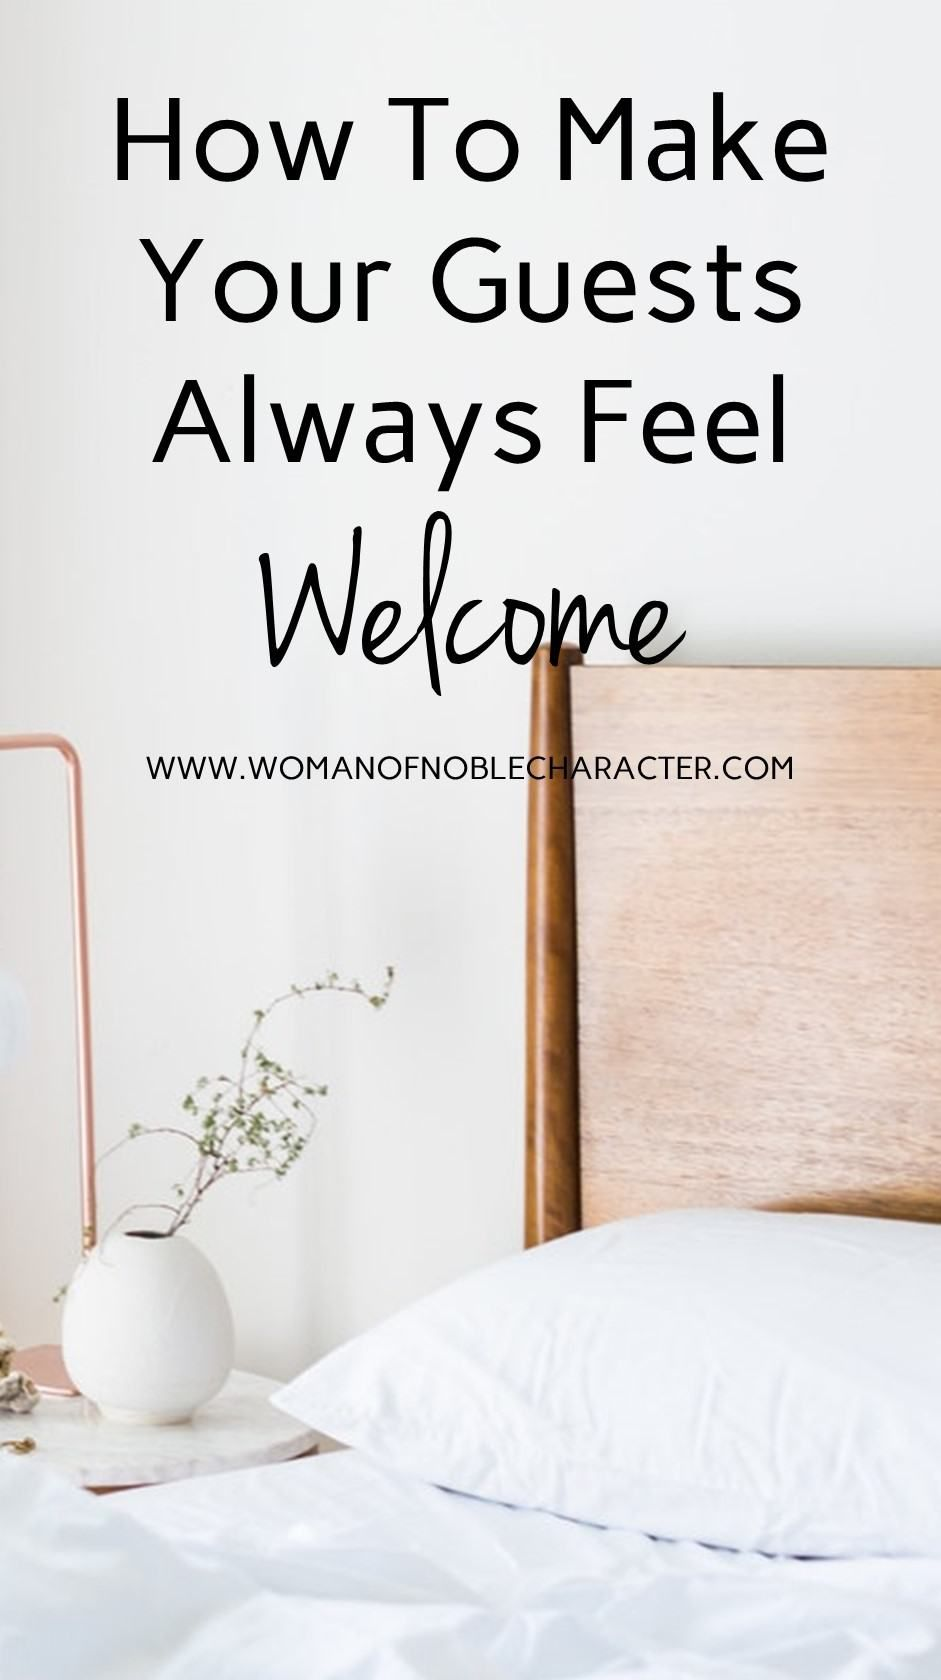 How to show biblical hospitality by preparing a welcoming guest room. Tips and ideas to make your guests feel welcome in your home. #guestroom #hospitality #welcomeguests #biblicalhospitality #Proverbs31 #Proverbs31wife